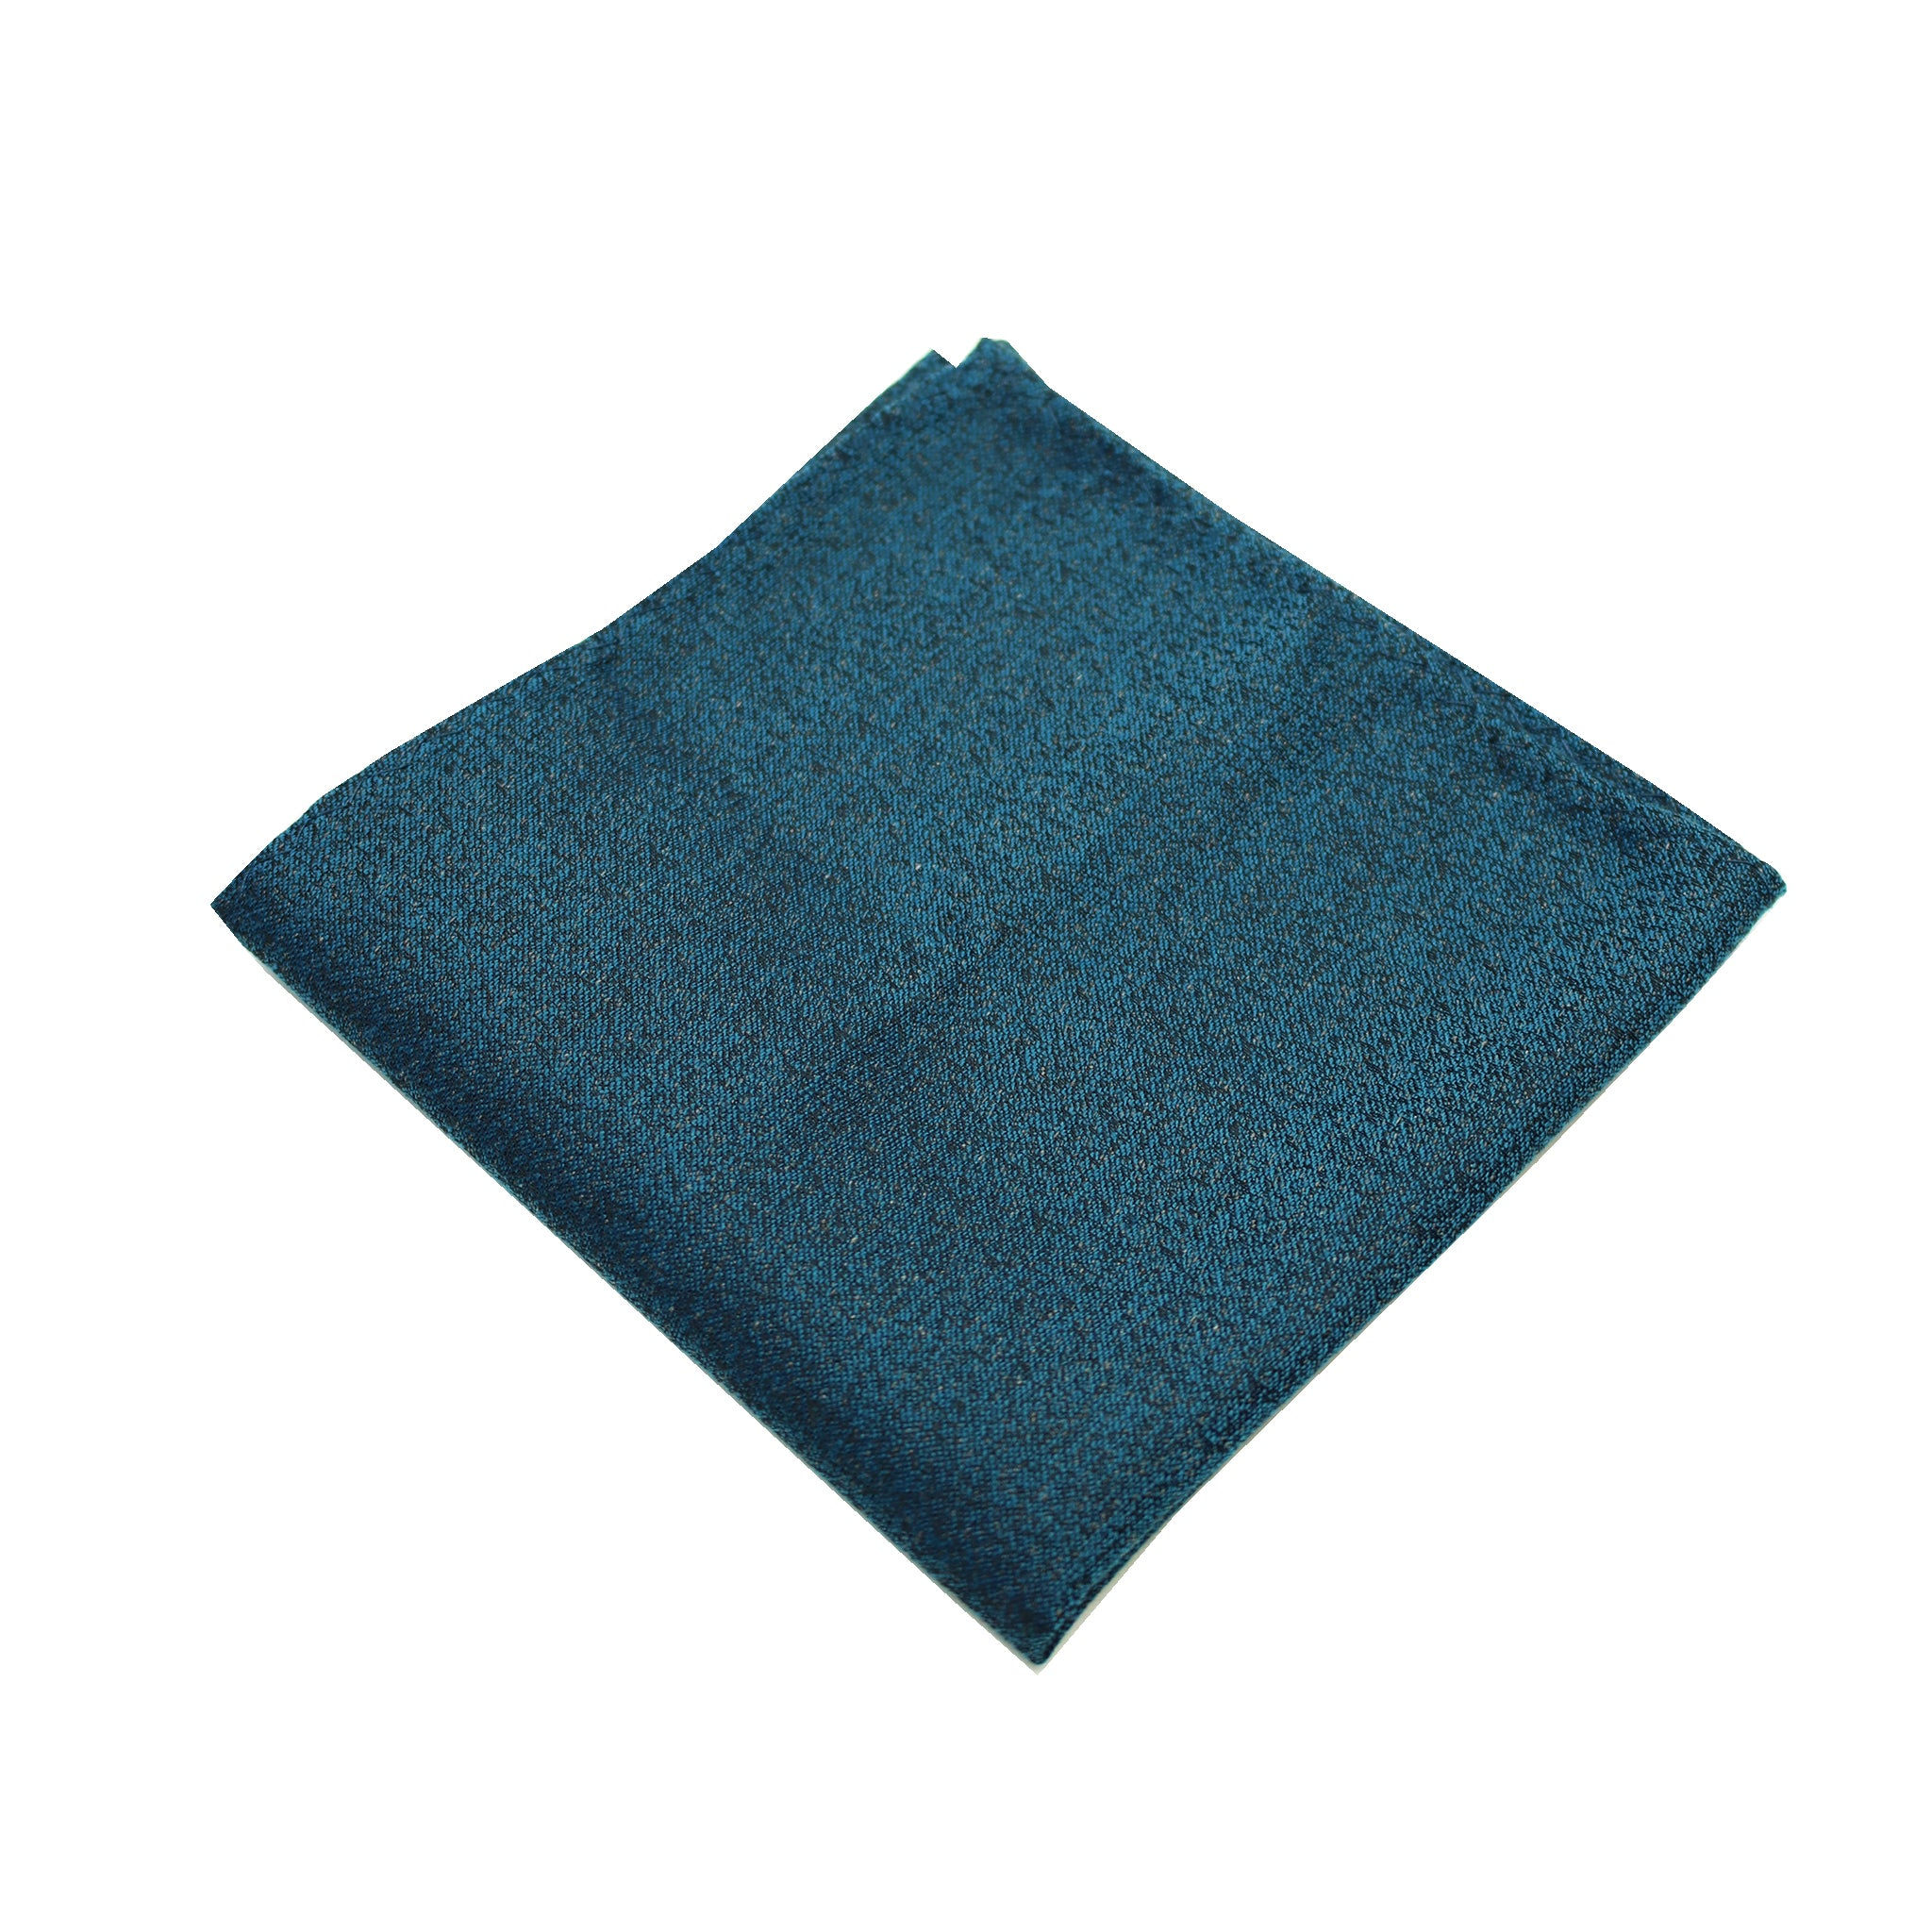 Aqua & Black Textured Pocket Square